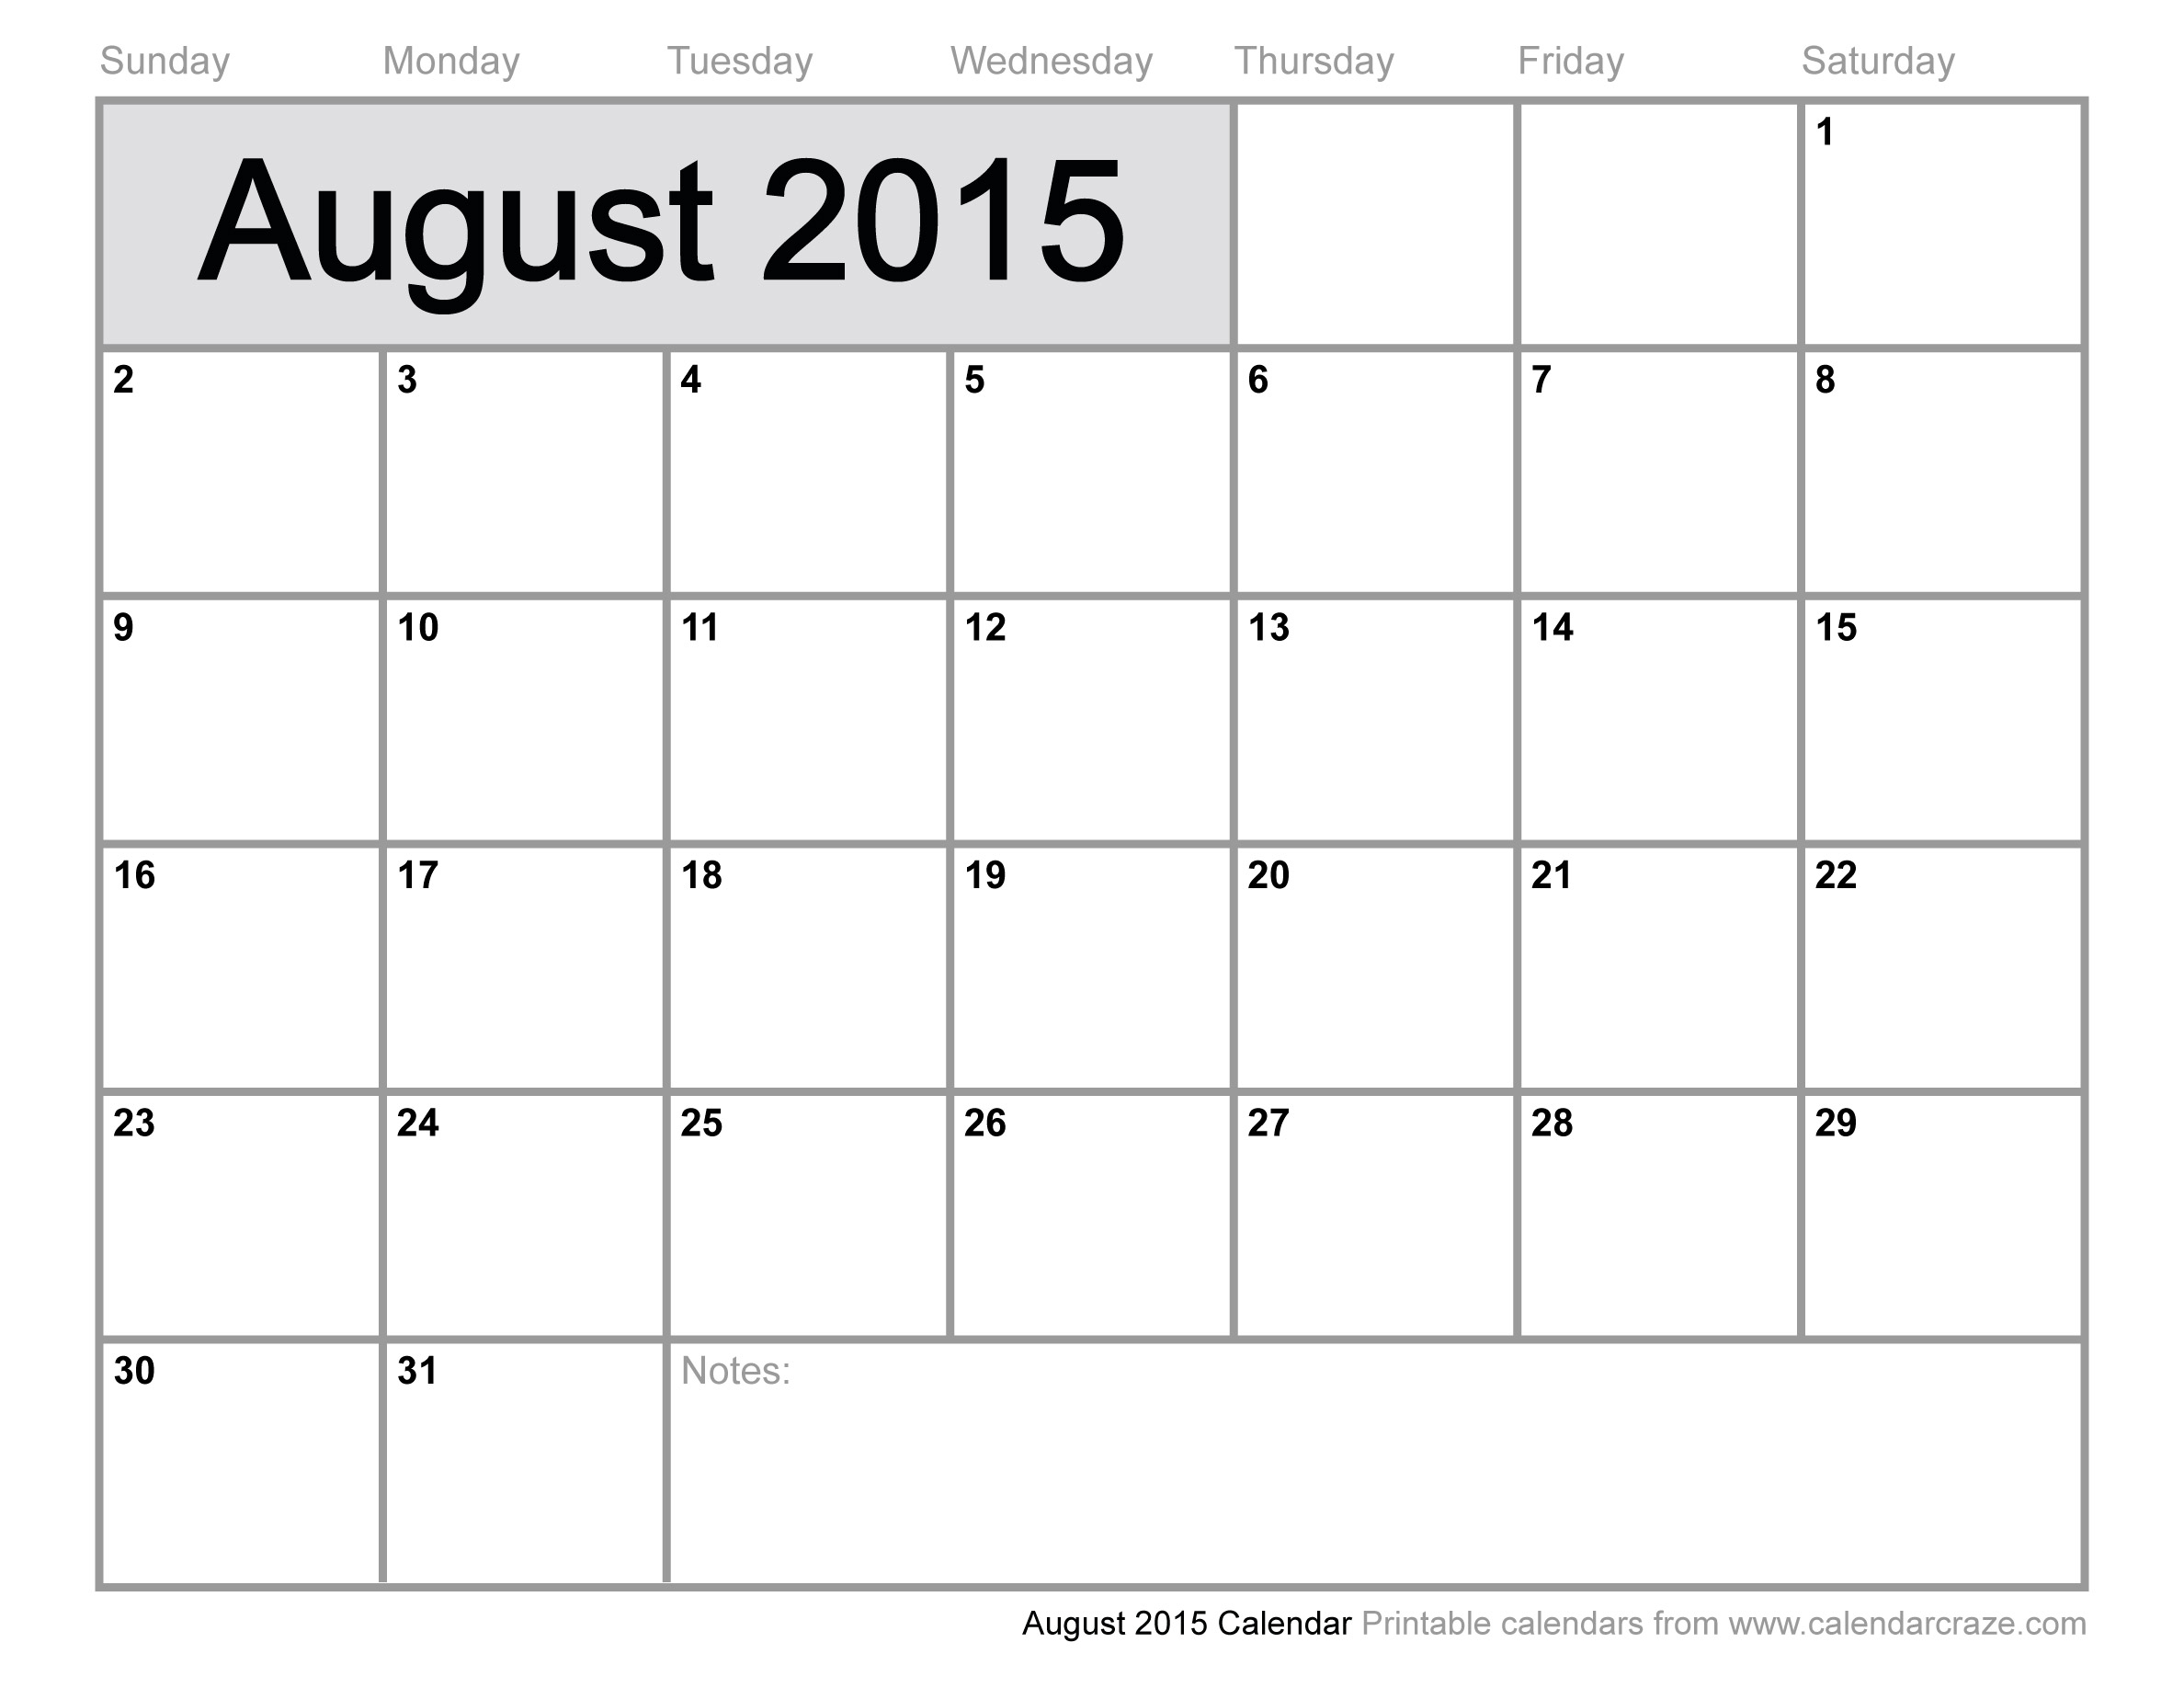 8 Images of Aug 2015 Calendar Printable